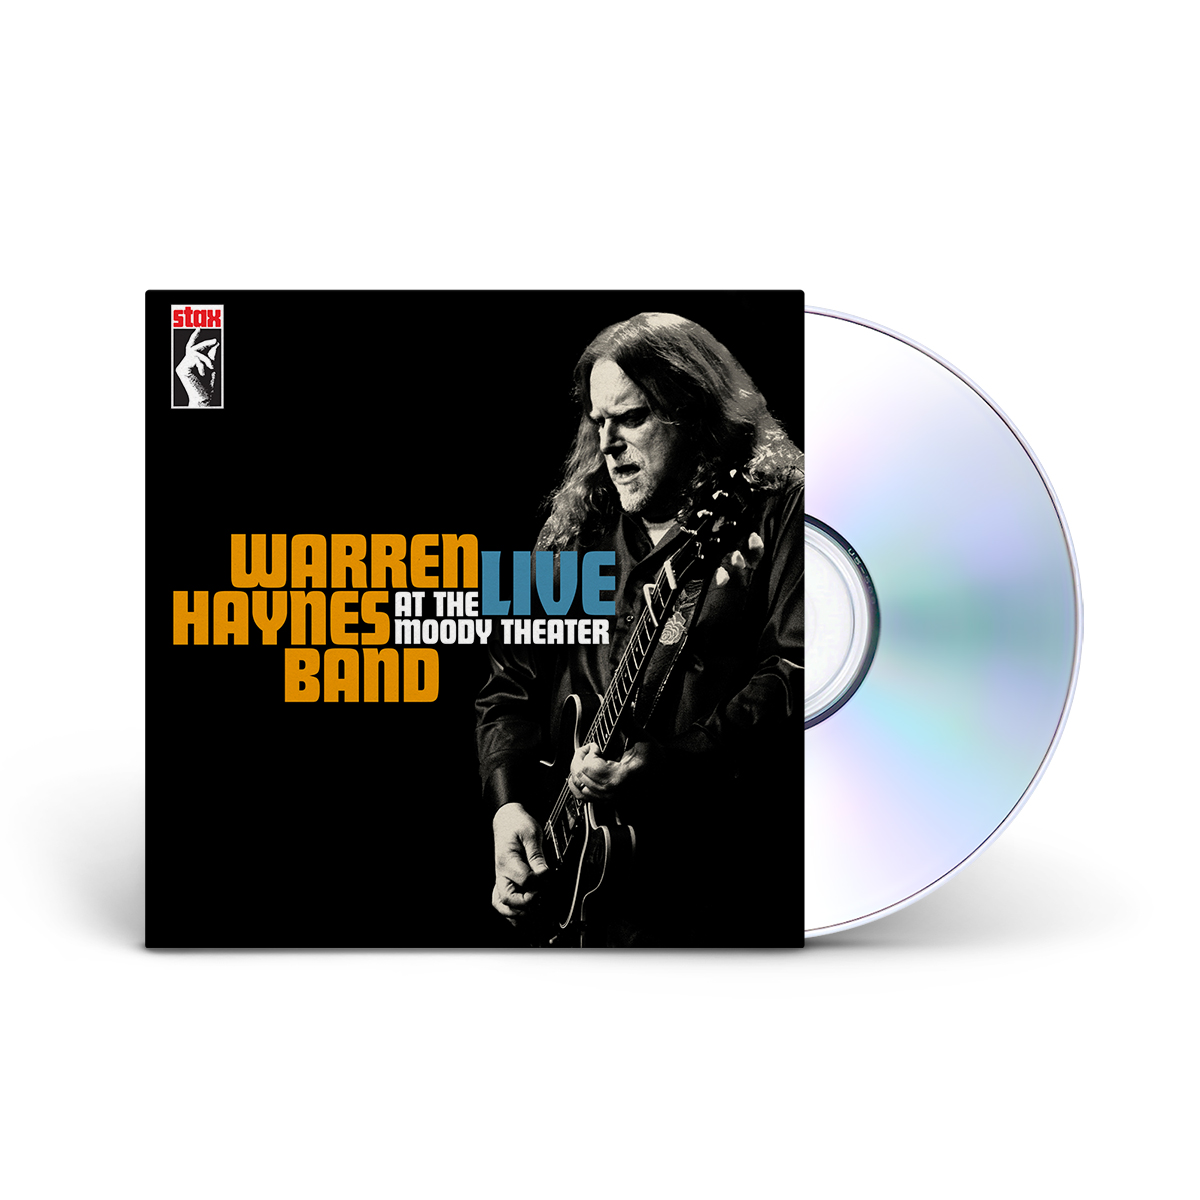 Warren Haynes Band - Live From the Moody Theatre DVD/CD with Bonus Disk